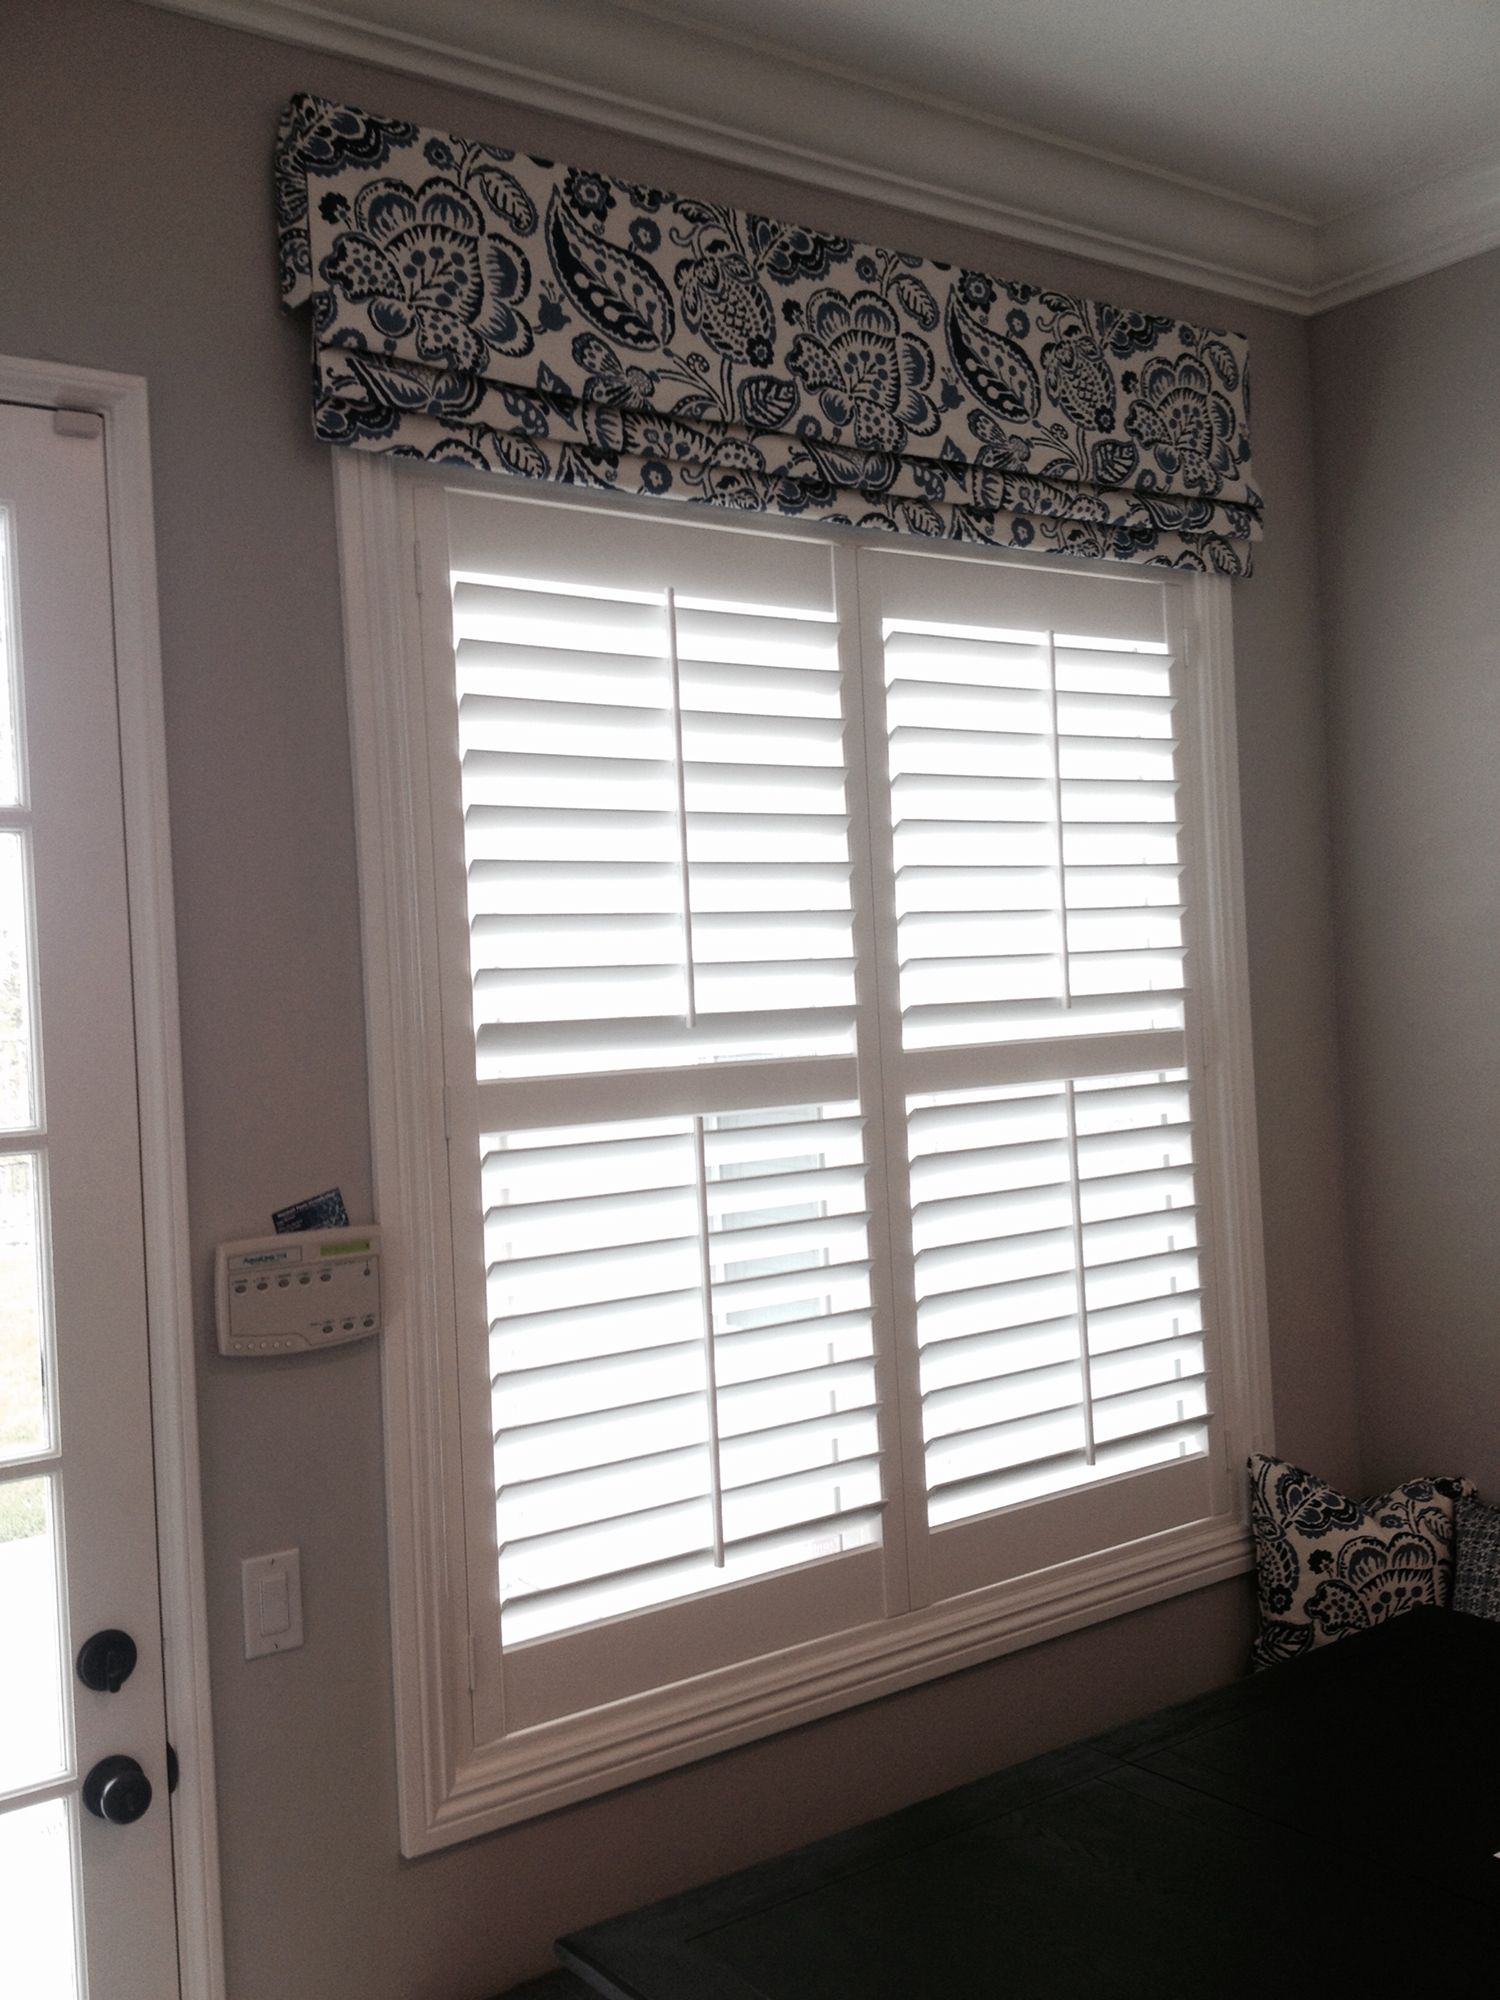 Hunter Douglas New Style Shutter With Fabric Valance Shutters With Curtains Valance Window Treatments Window Treatments Living Room #shutters #in #living #room